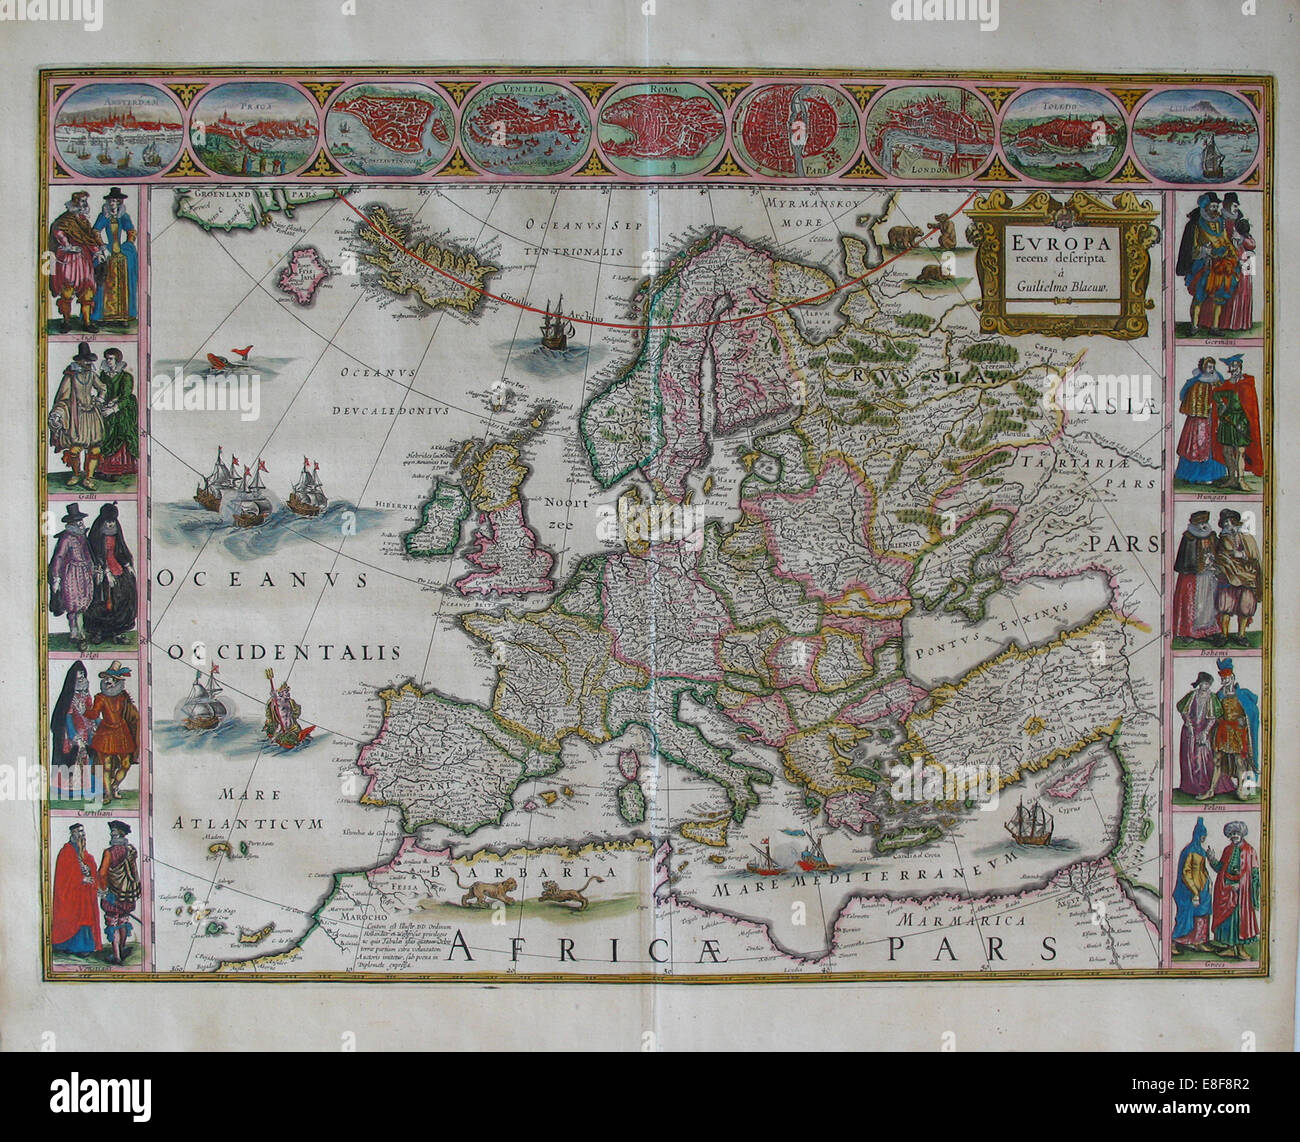 Europe Map (From: Atlas Maior). Artist: Blaeu, Joan (1596-1673) - Stock Image